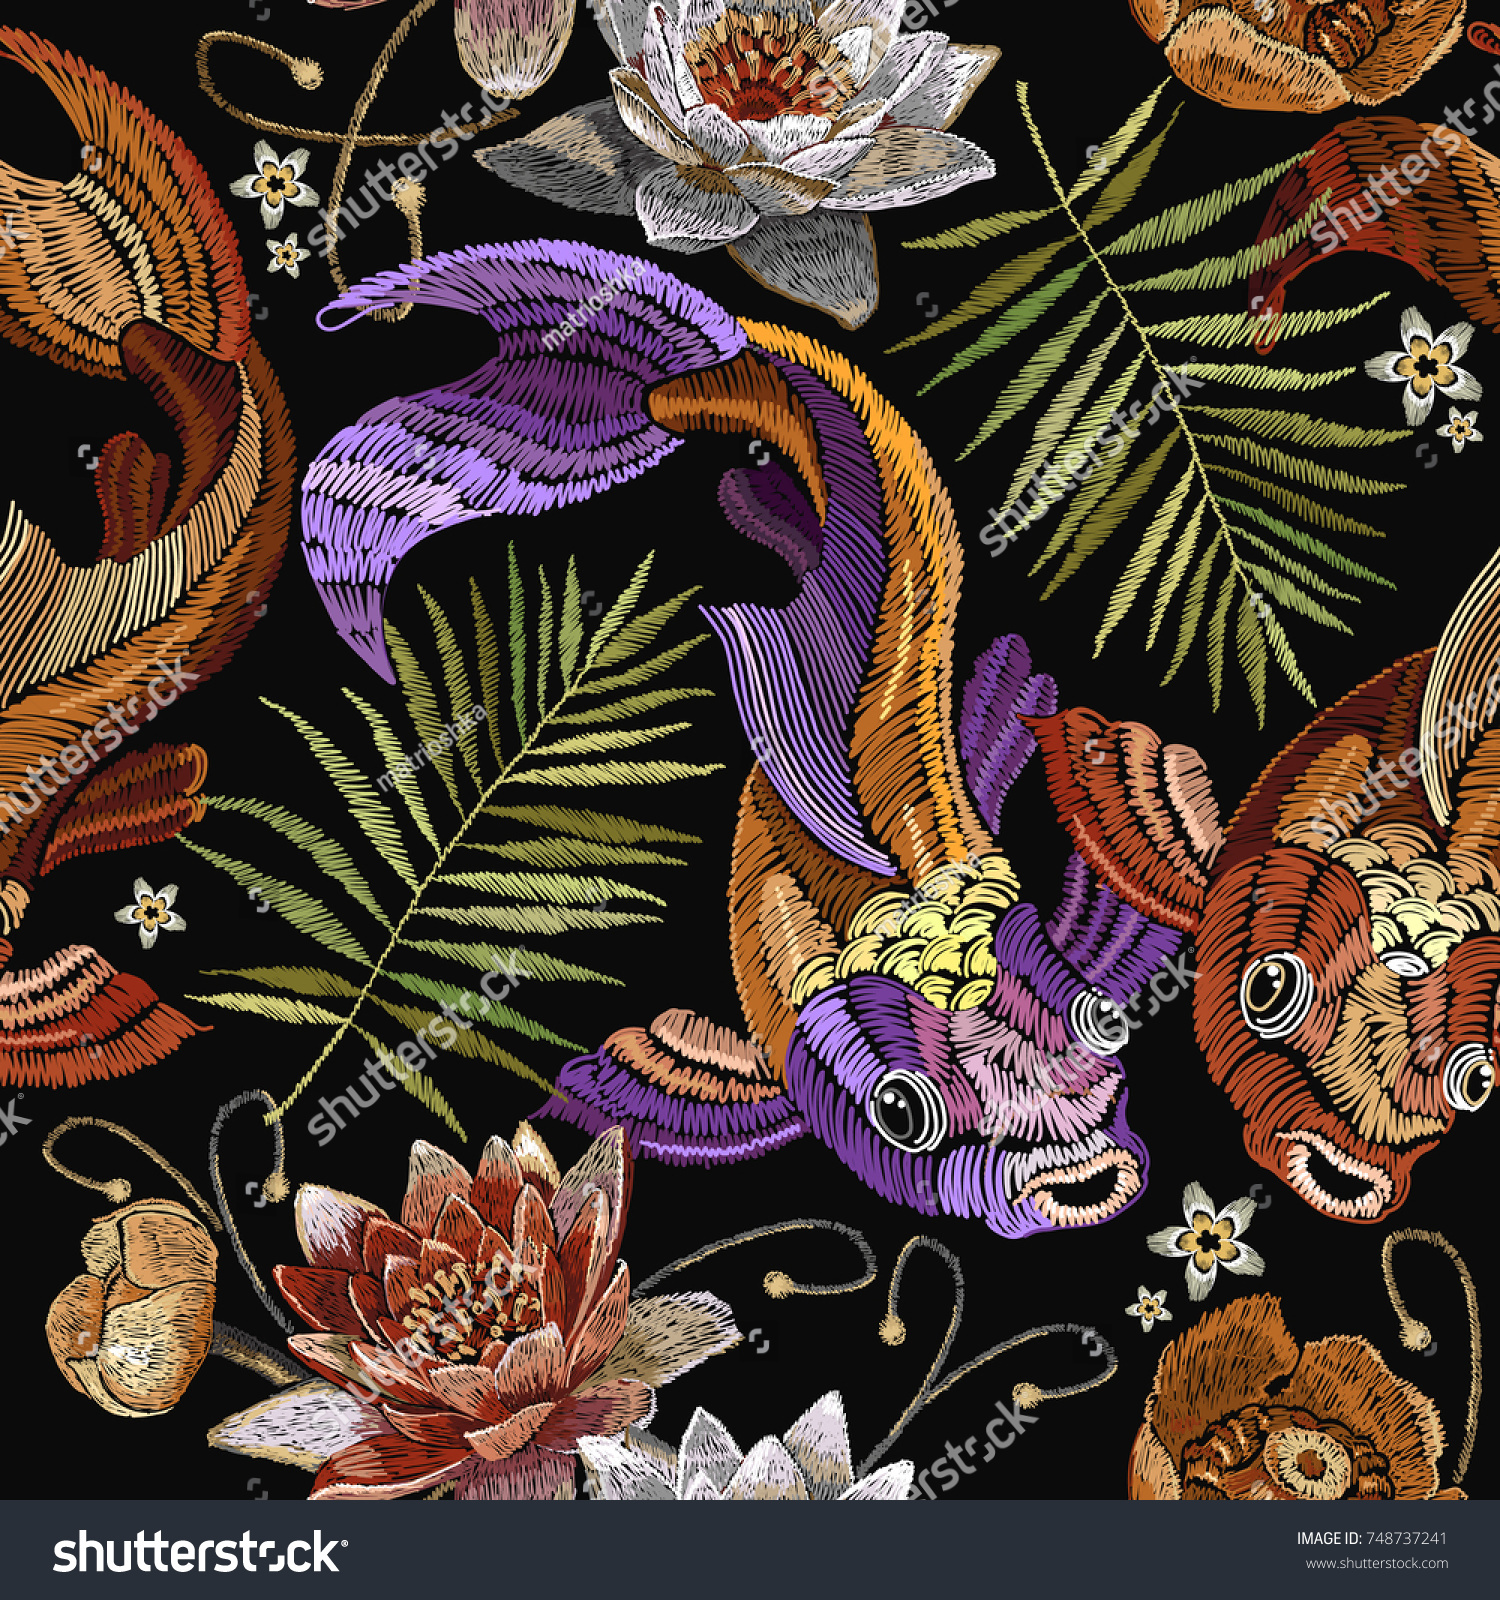 Embroidery vintage koi fish palm leaves and water lily seamless pattern japanese pattern